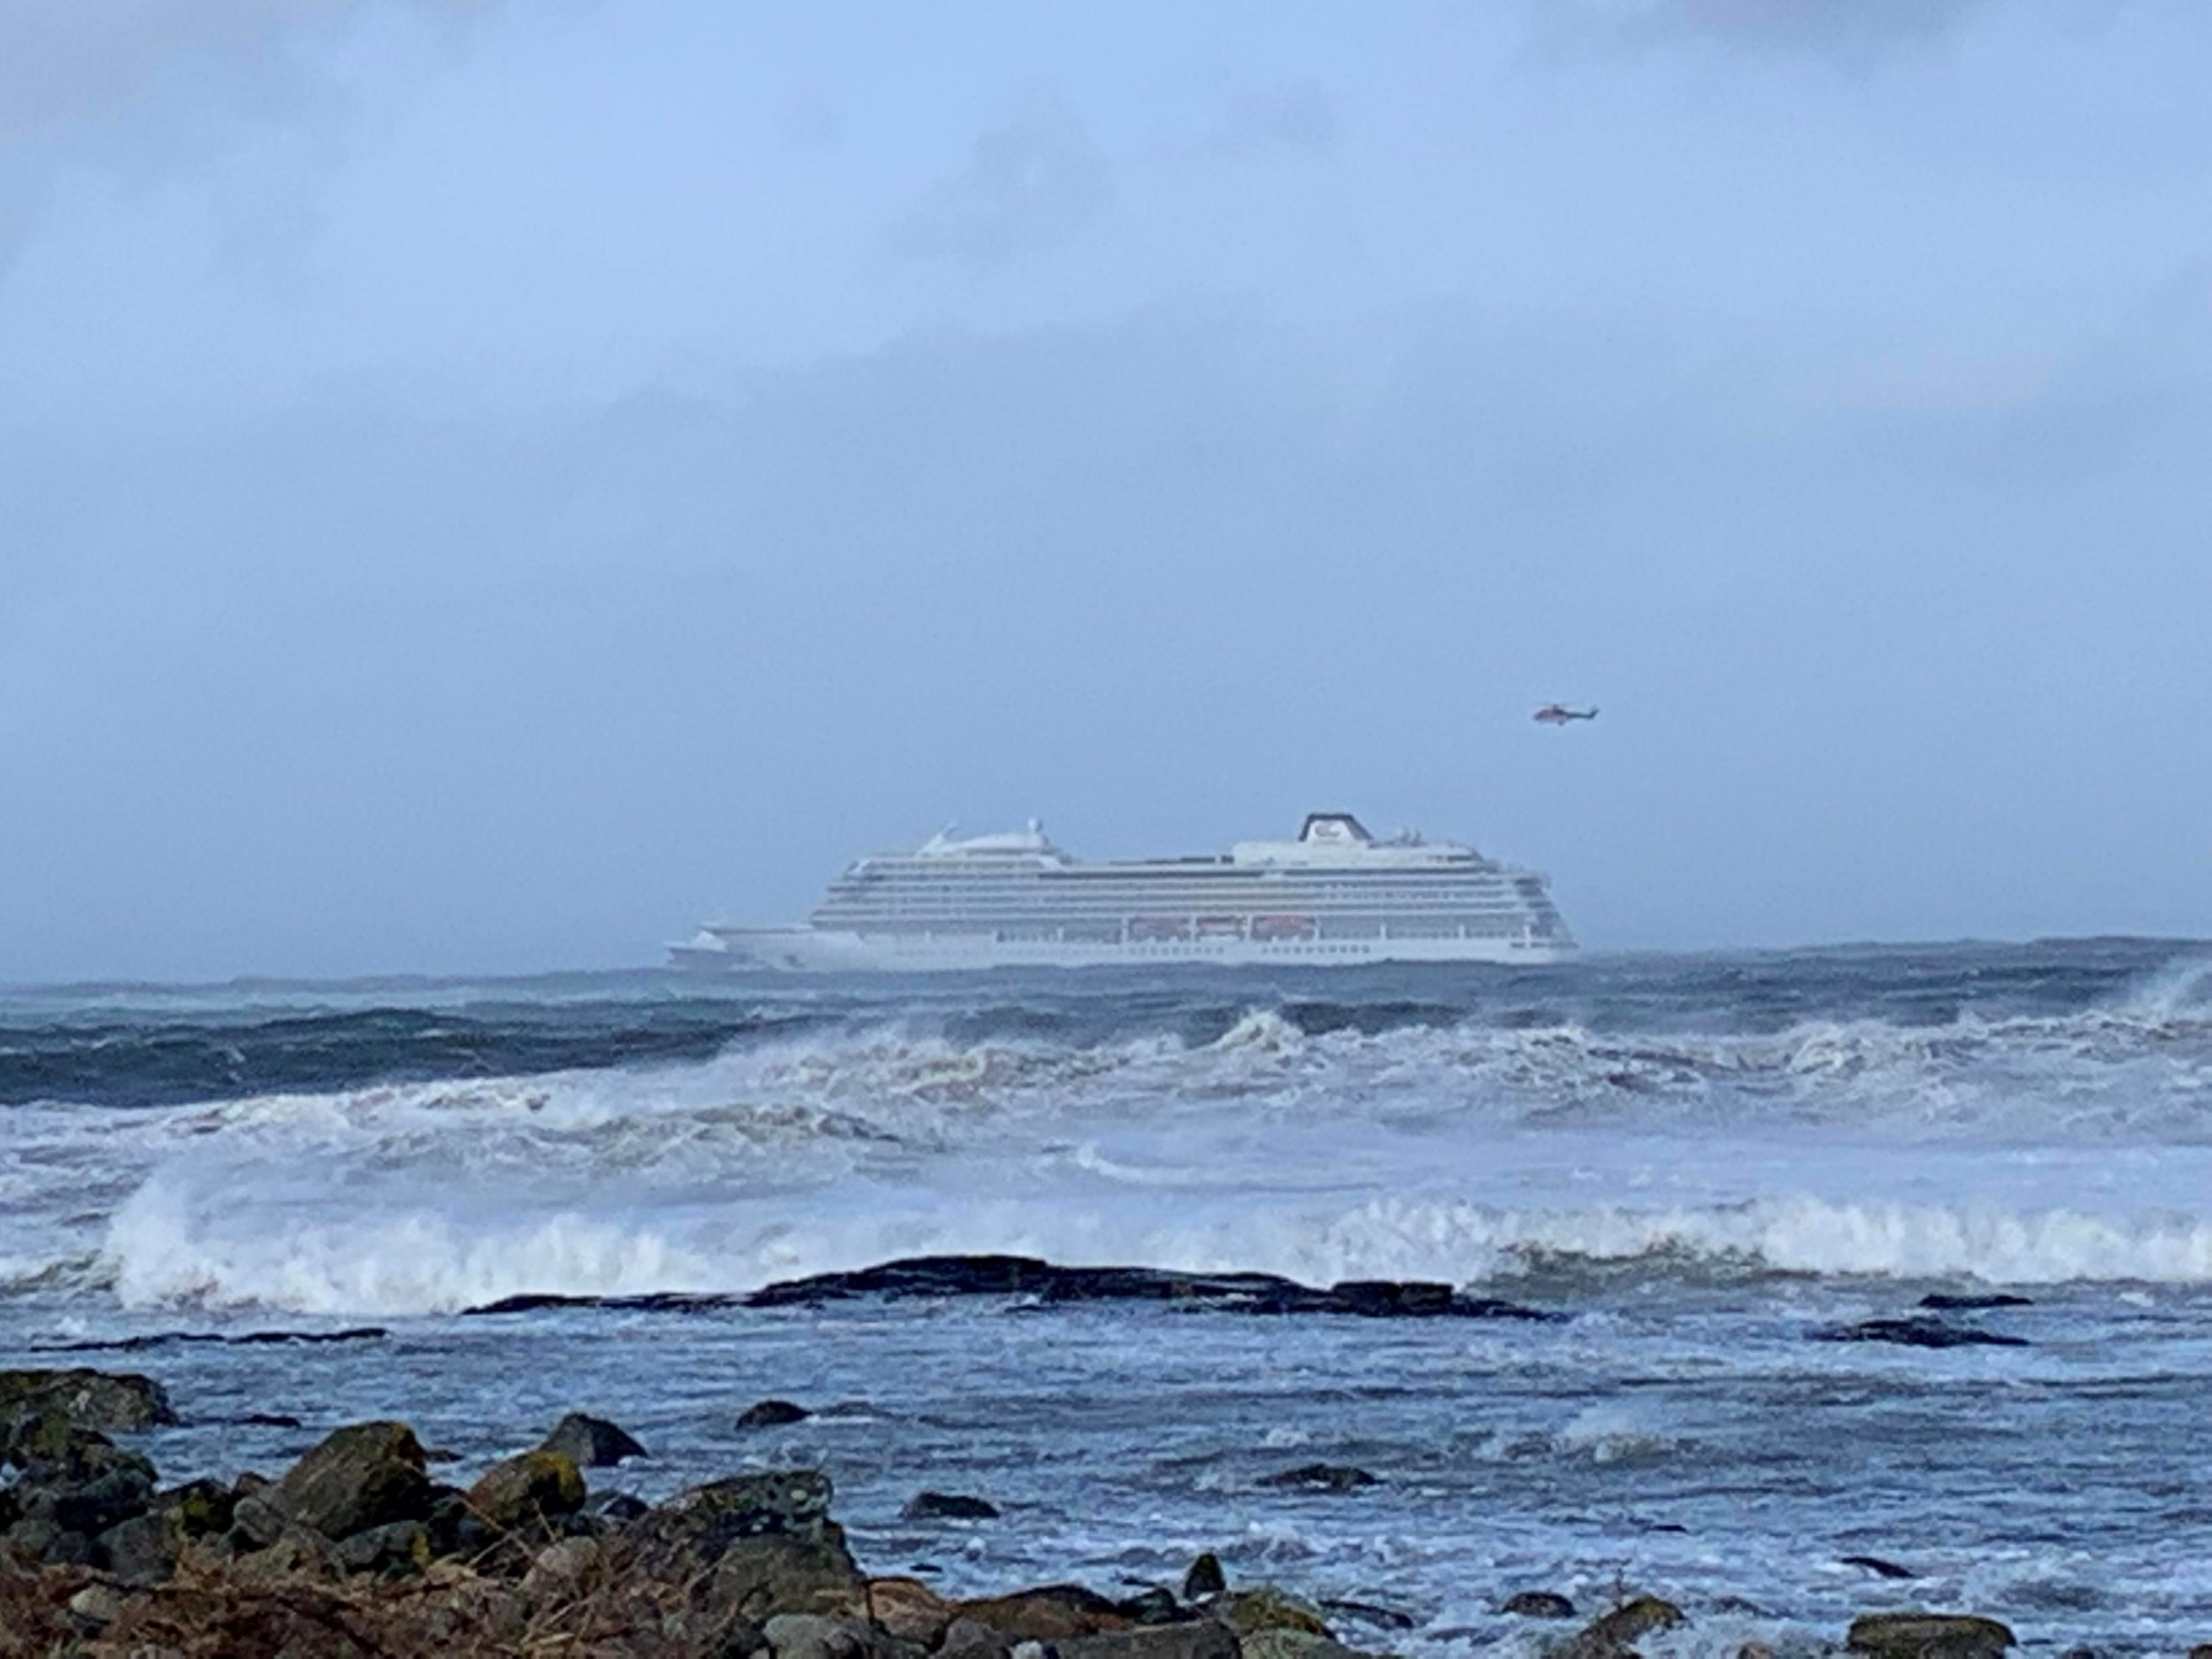 A cruise ship Viking Sky drifts towards land after an engine failure, Hustadvika, Norway March 23, 2019. Odd Roar Lange/NTB Scanpix/via REUTERS ATTENTION EDITORS - THIS IMAGE WAS PROVIDED BY A THIRD PARTY. NORWAY OUT. NO COMMERCIAL OR EDITORIAL SALES IN NORWAY.